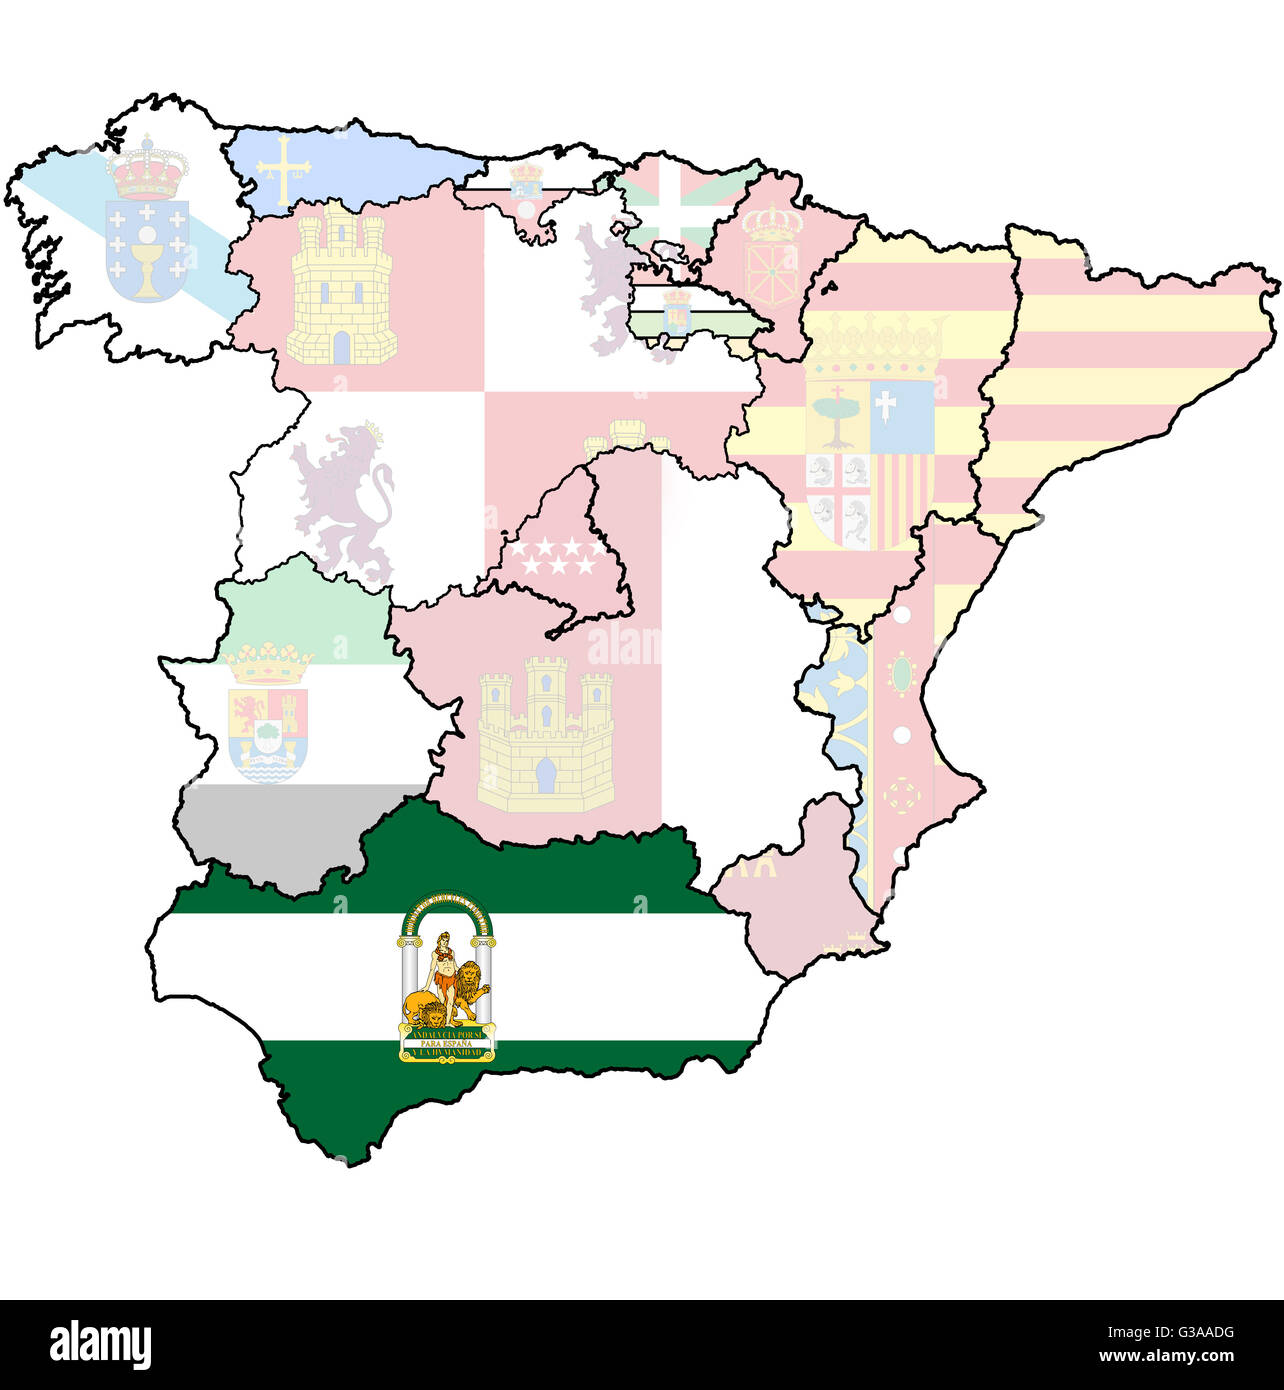 Spain Map Regions Cut Out Stock Images & Pictures - Alamy